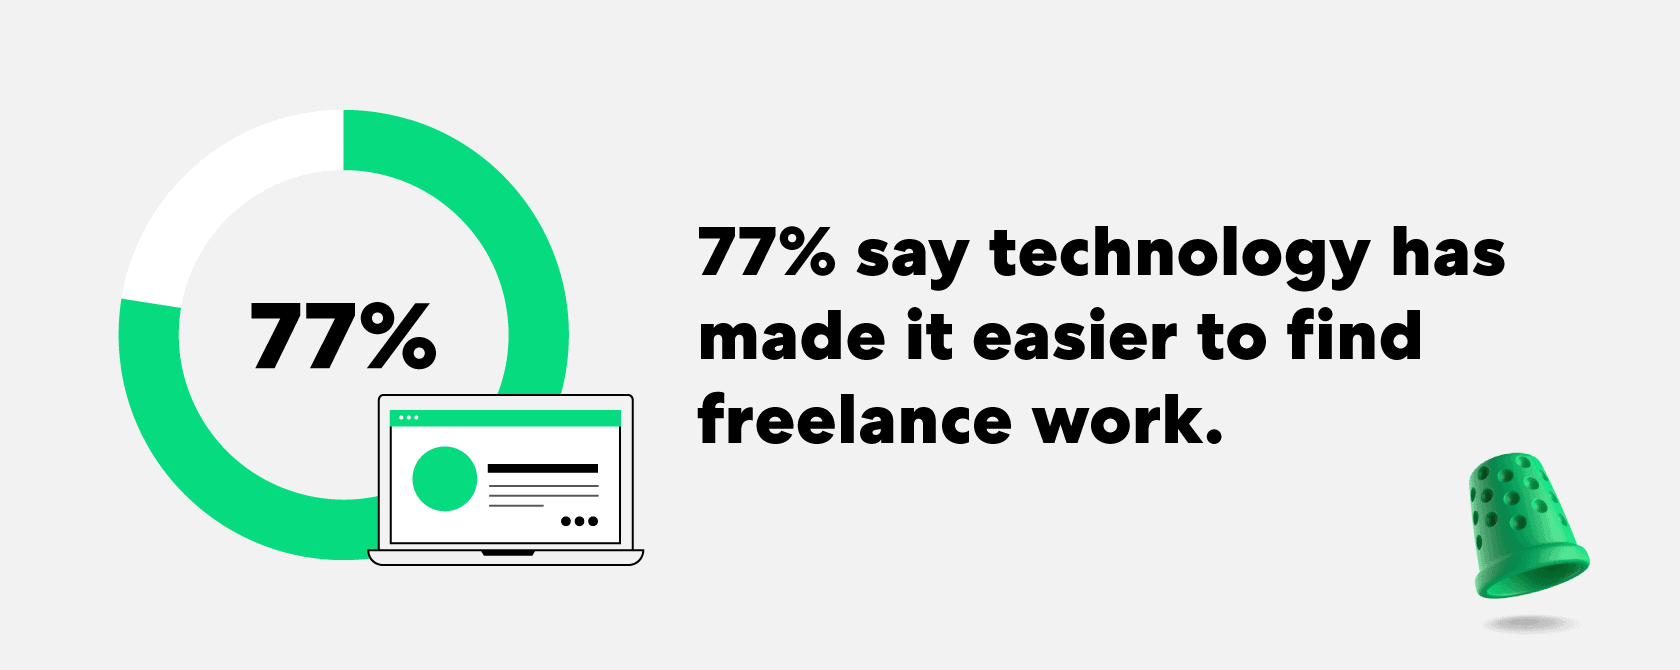 77-technology-has-made-it-easier-to-find-freelance-work